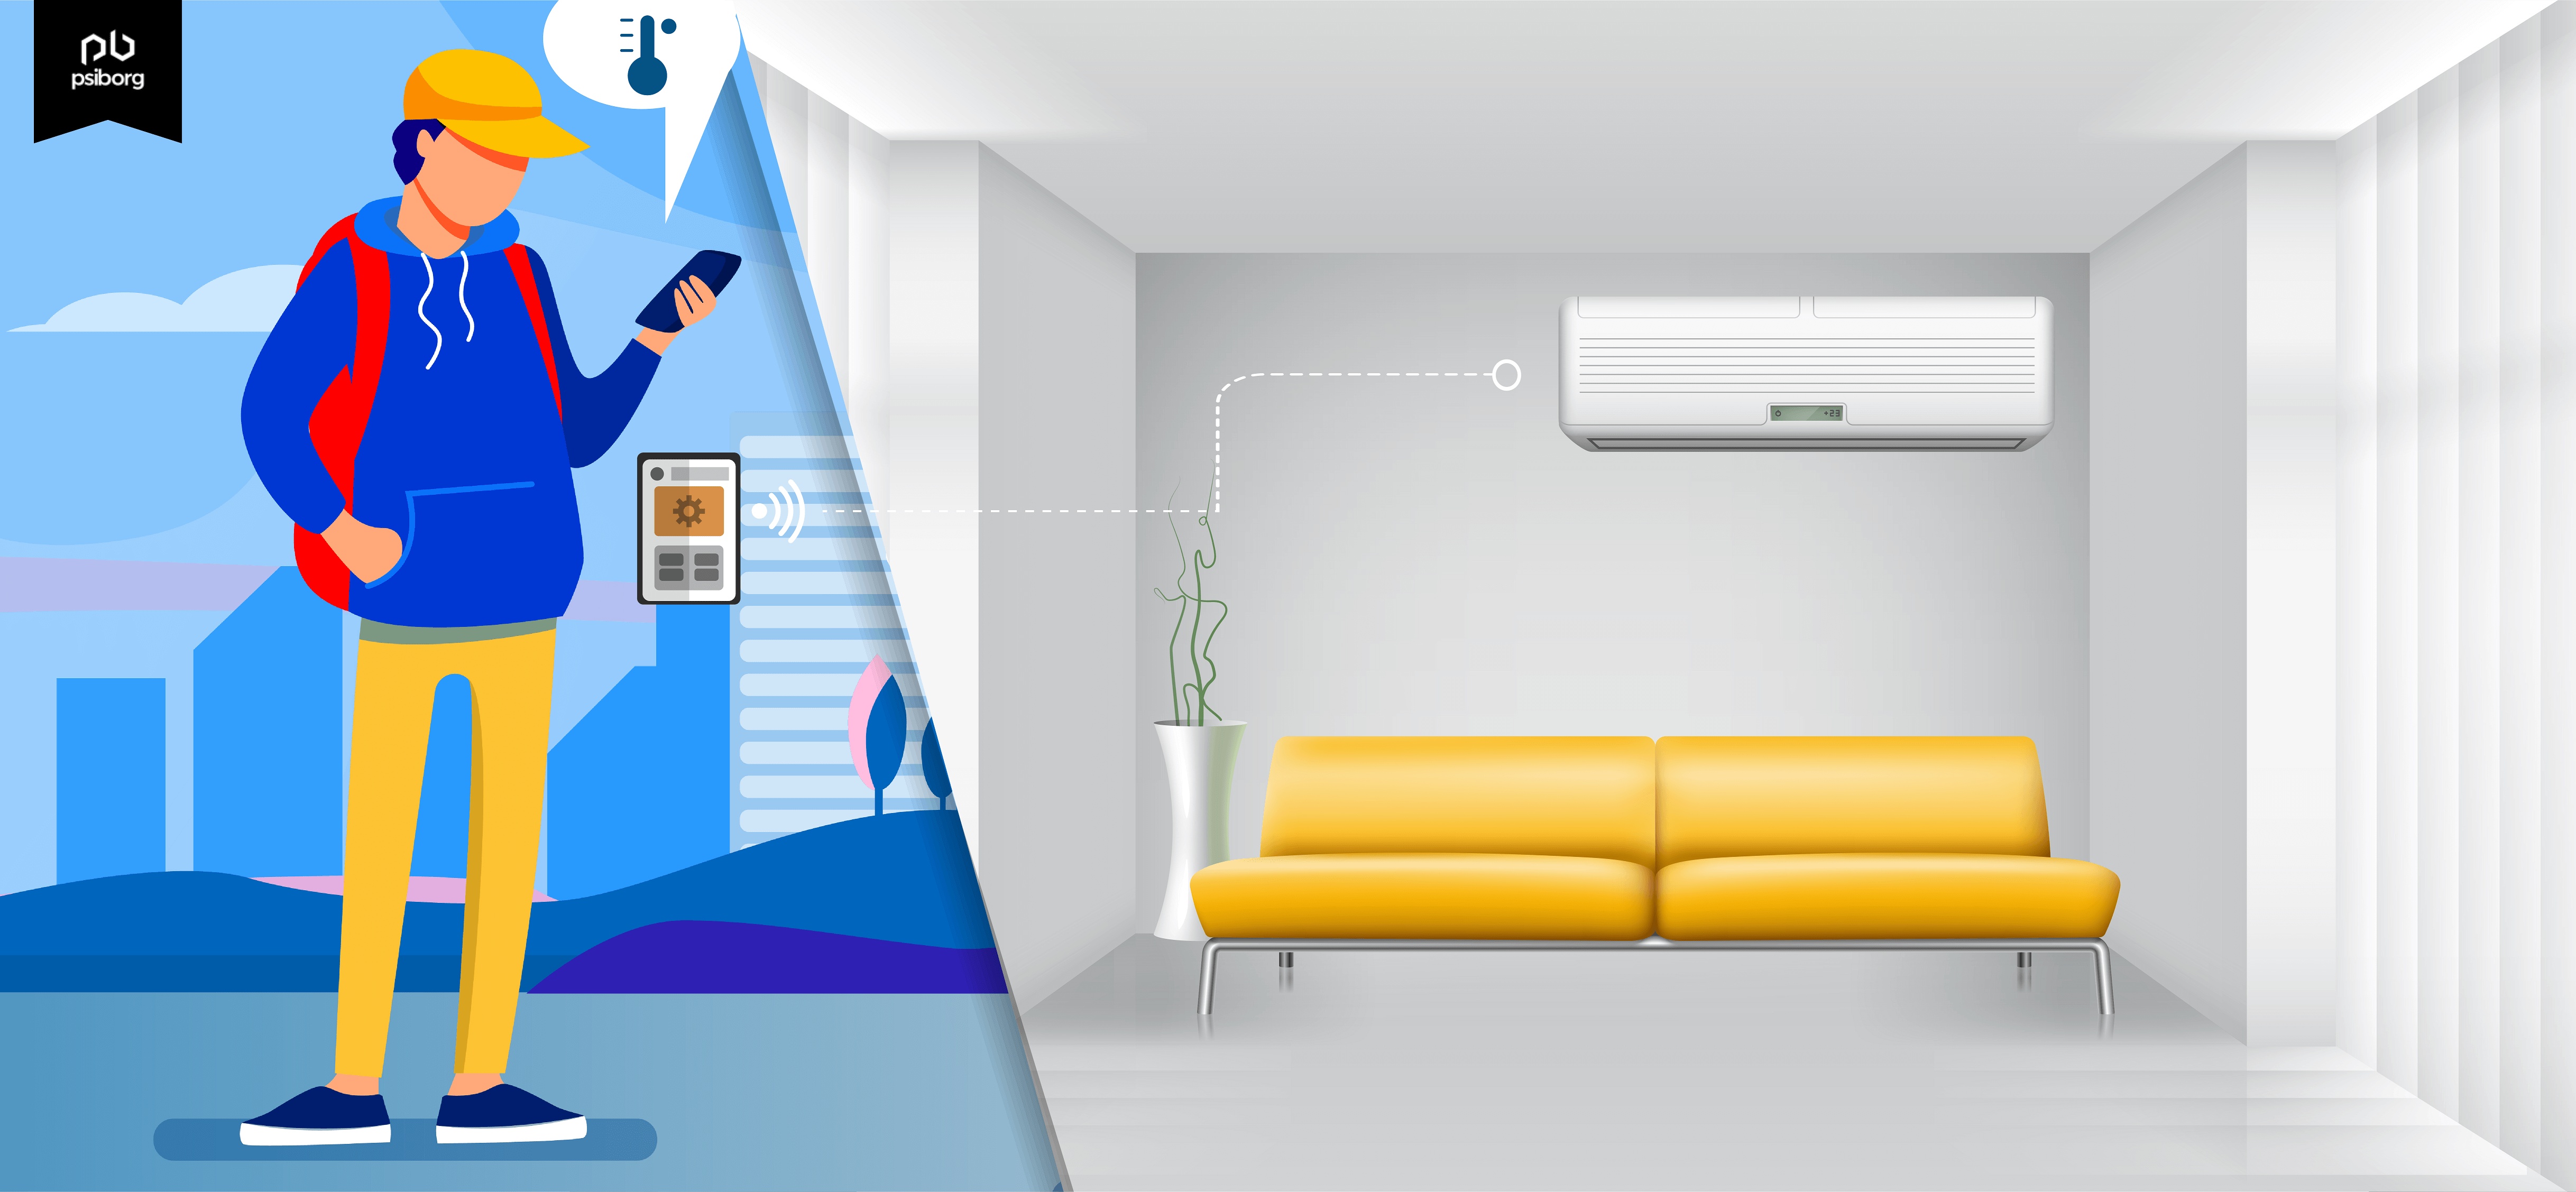 A diagrammatic description explaining the functionality of home automation and why iot is required